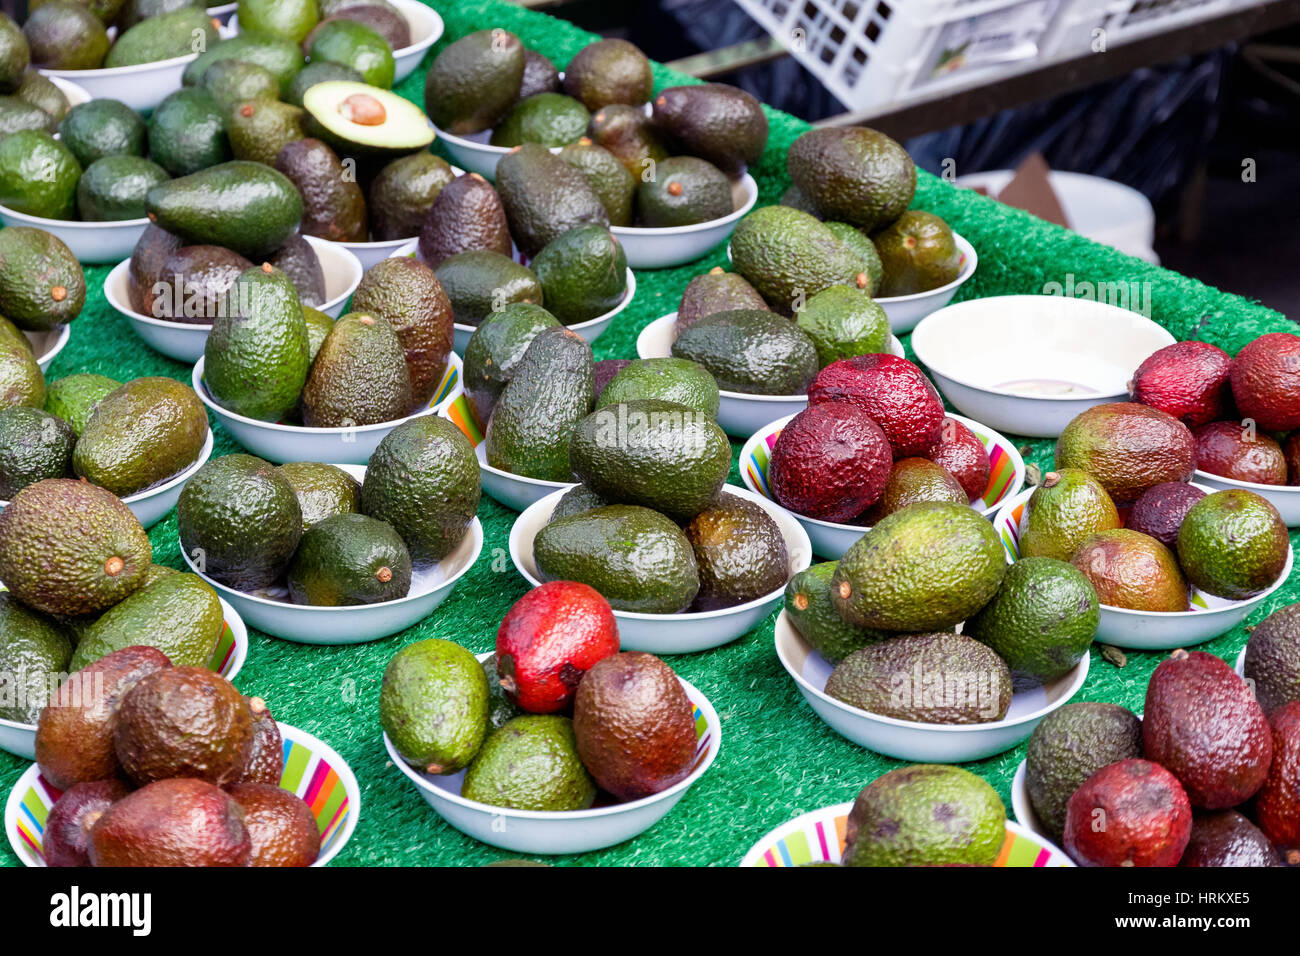 Avocado on display at Borough Market in London - Stock Image